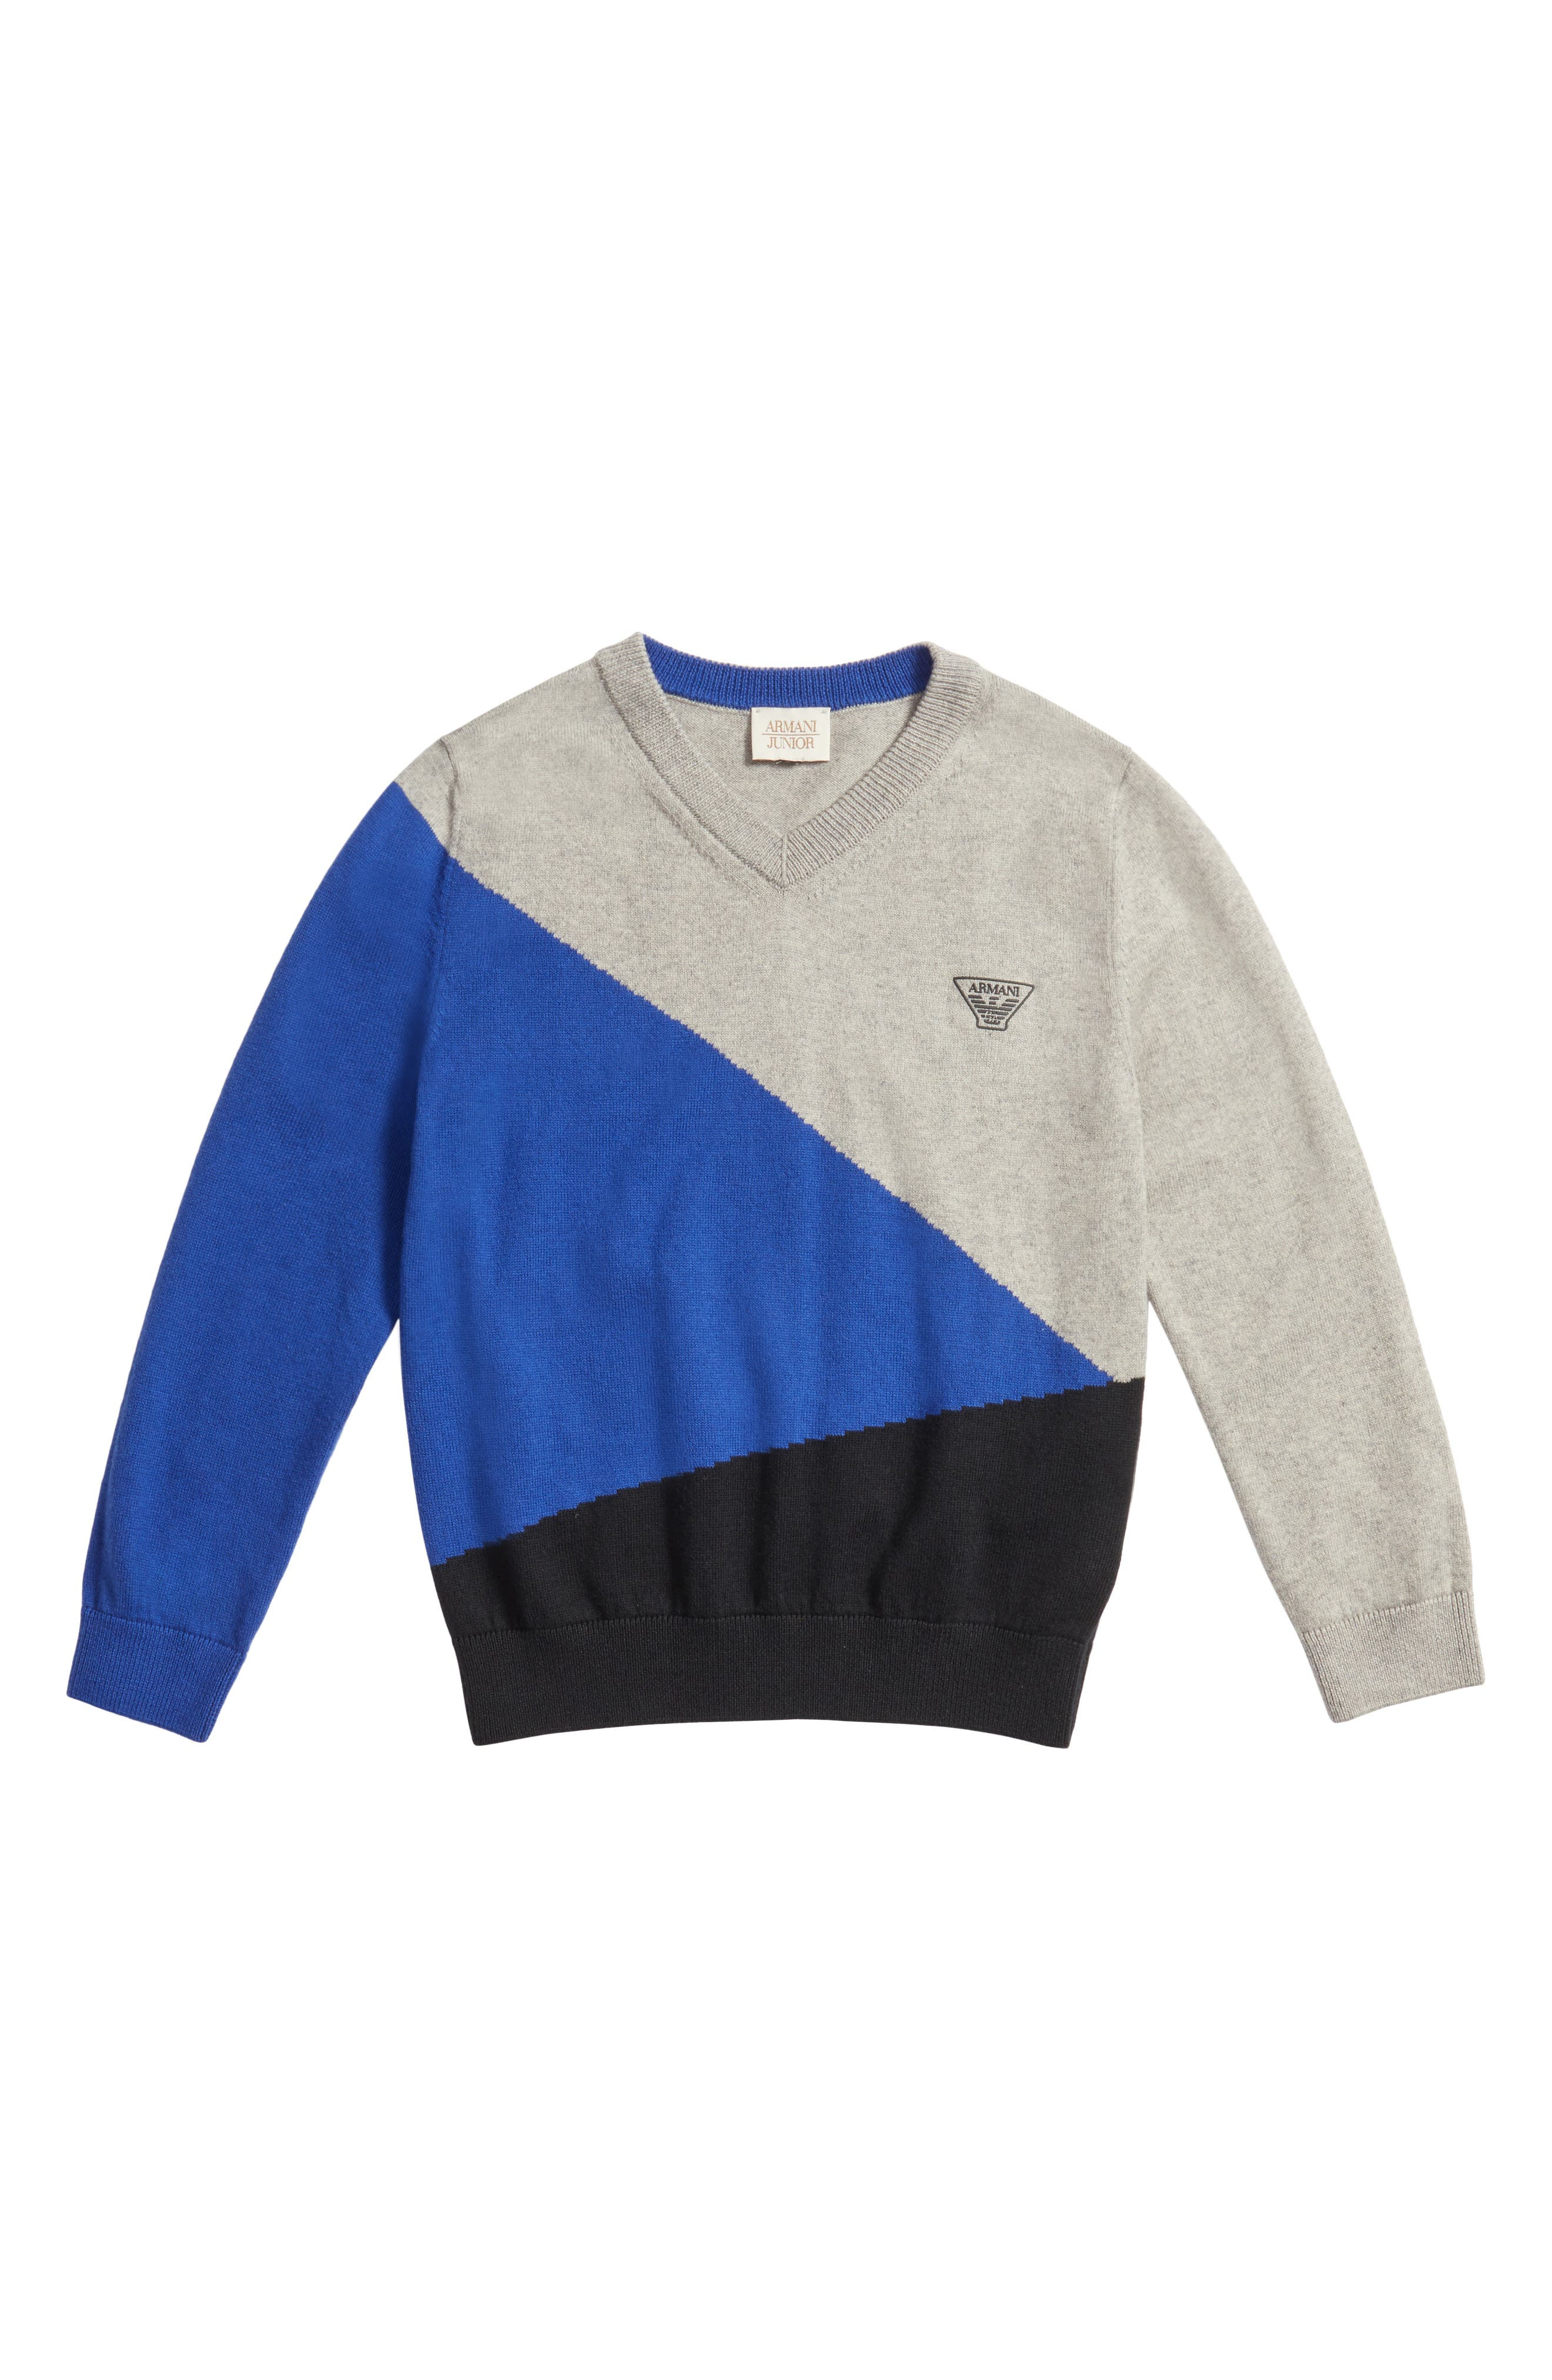 Alternate Image 1 Selected - Armani Junior Colorblock Sweater (Little Boys & Big Boys)